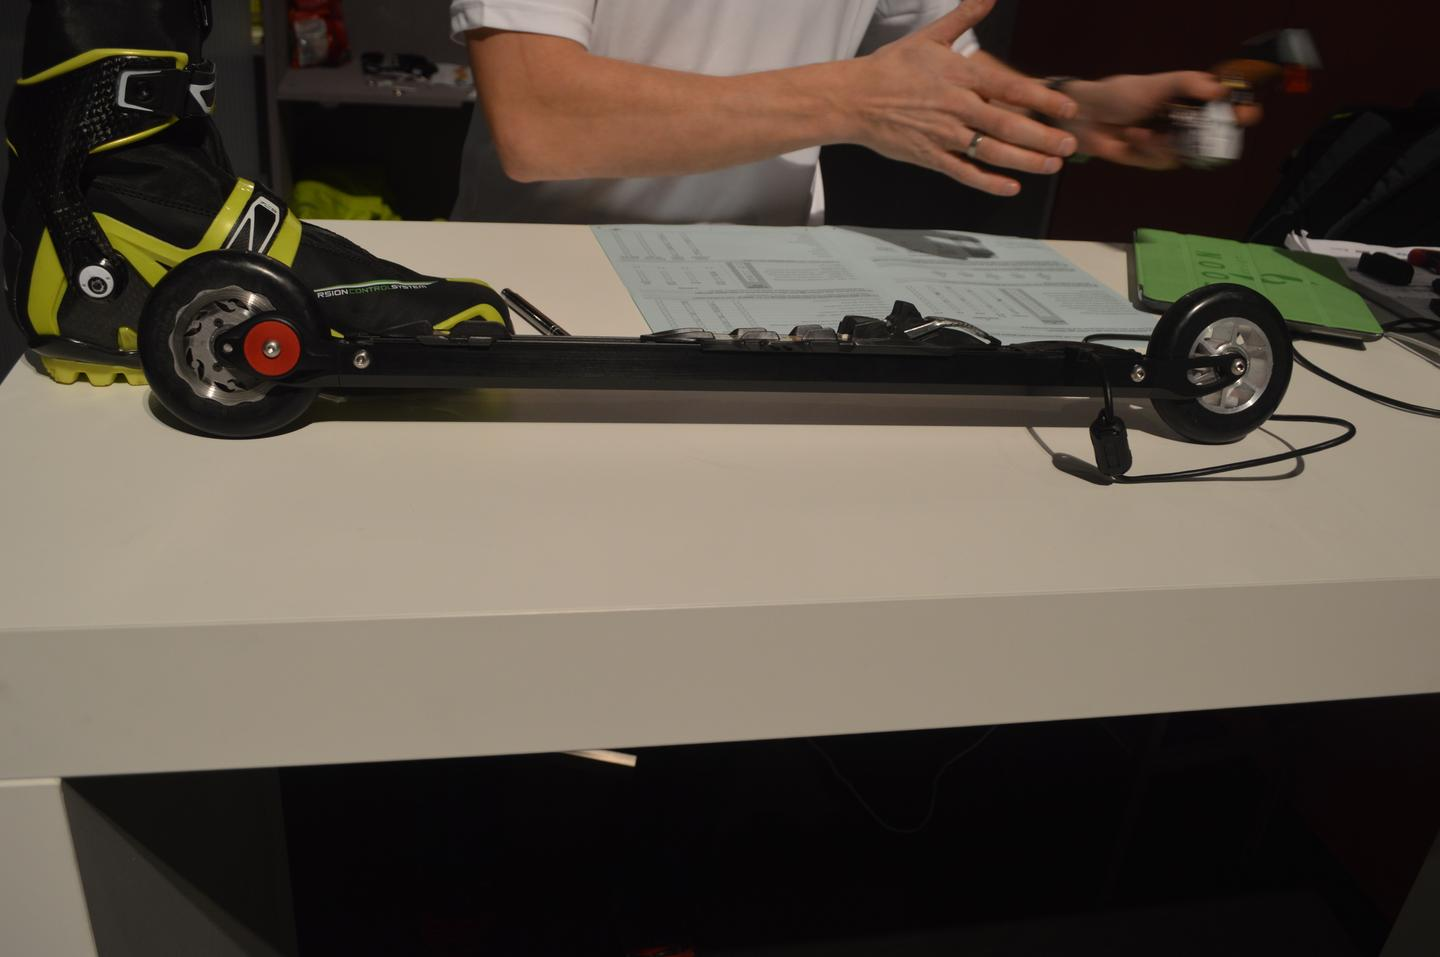 The RollerSafe ski has an integrated hydraulic braking system